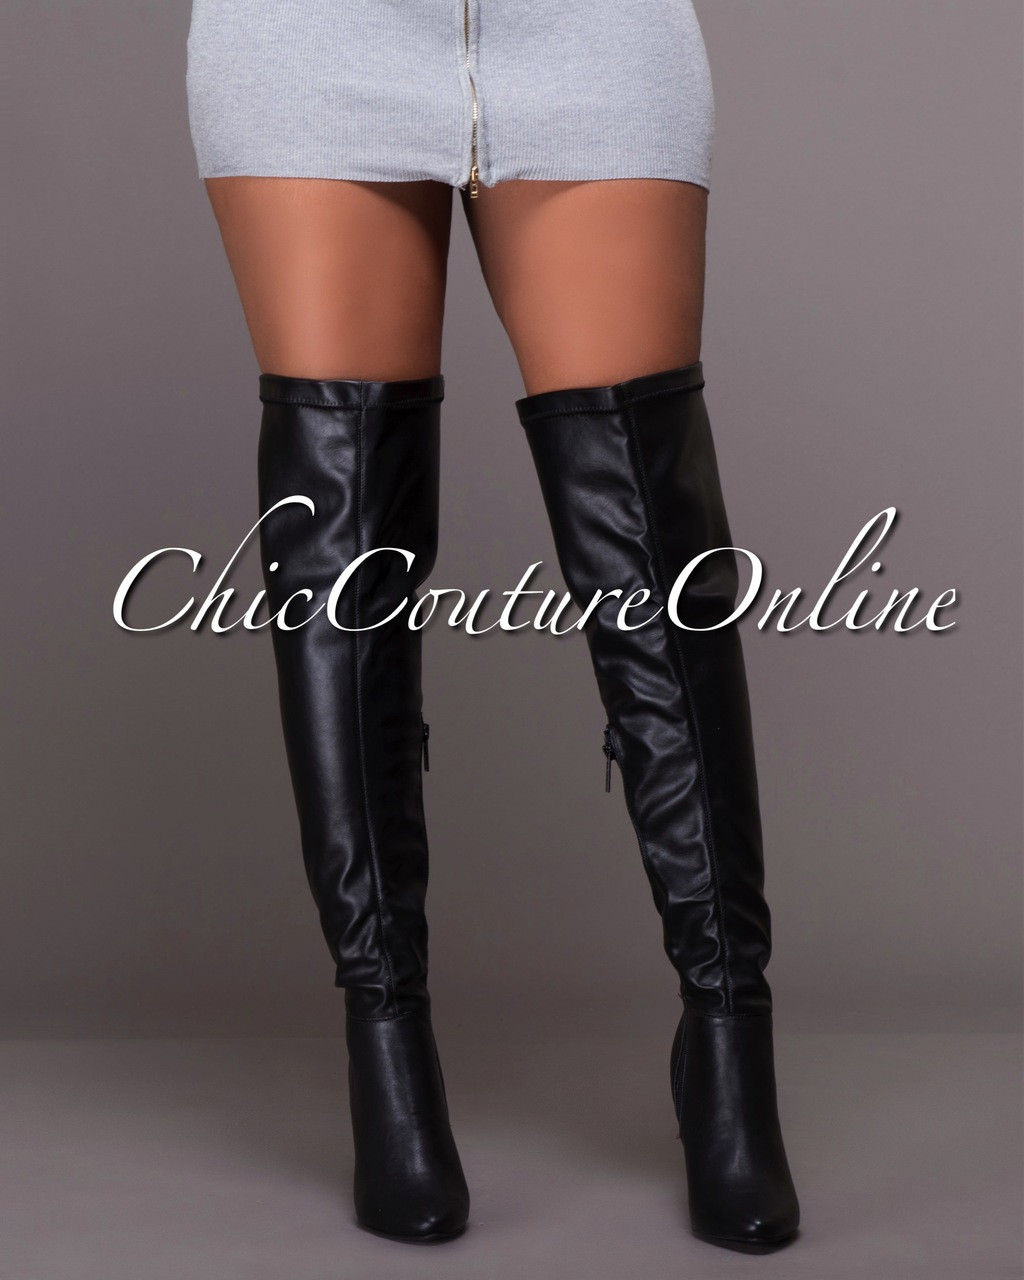 6d4e42a92ff Deadly Lust Black Faux Leather Over-The-Knee Boots. Price   55.00. Image 1